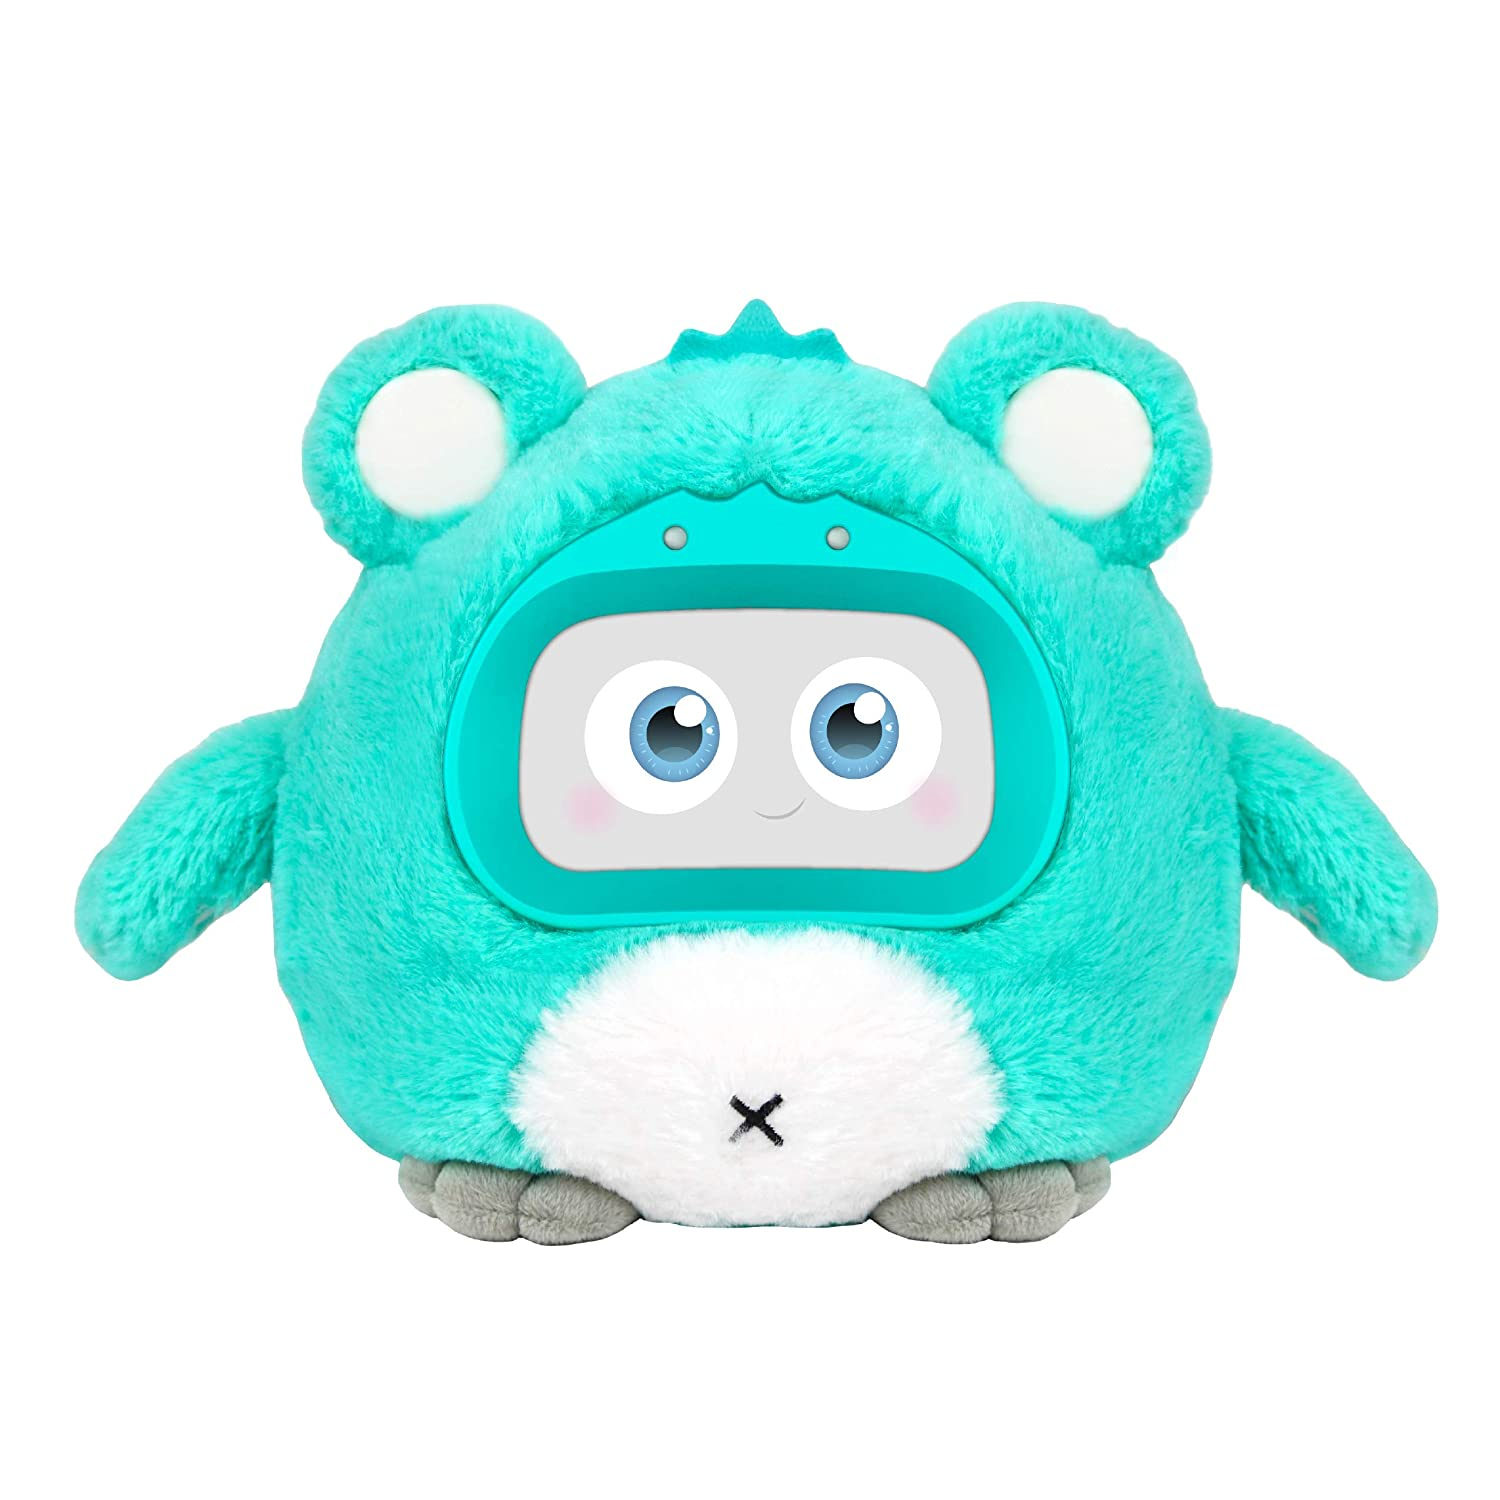 Woobo Minty Marshmallow - Interactive Robot for Curious Kids